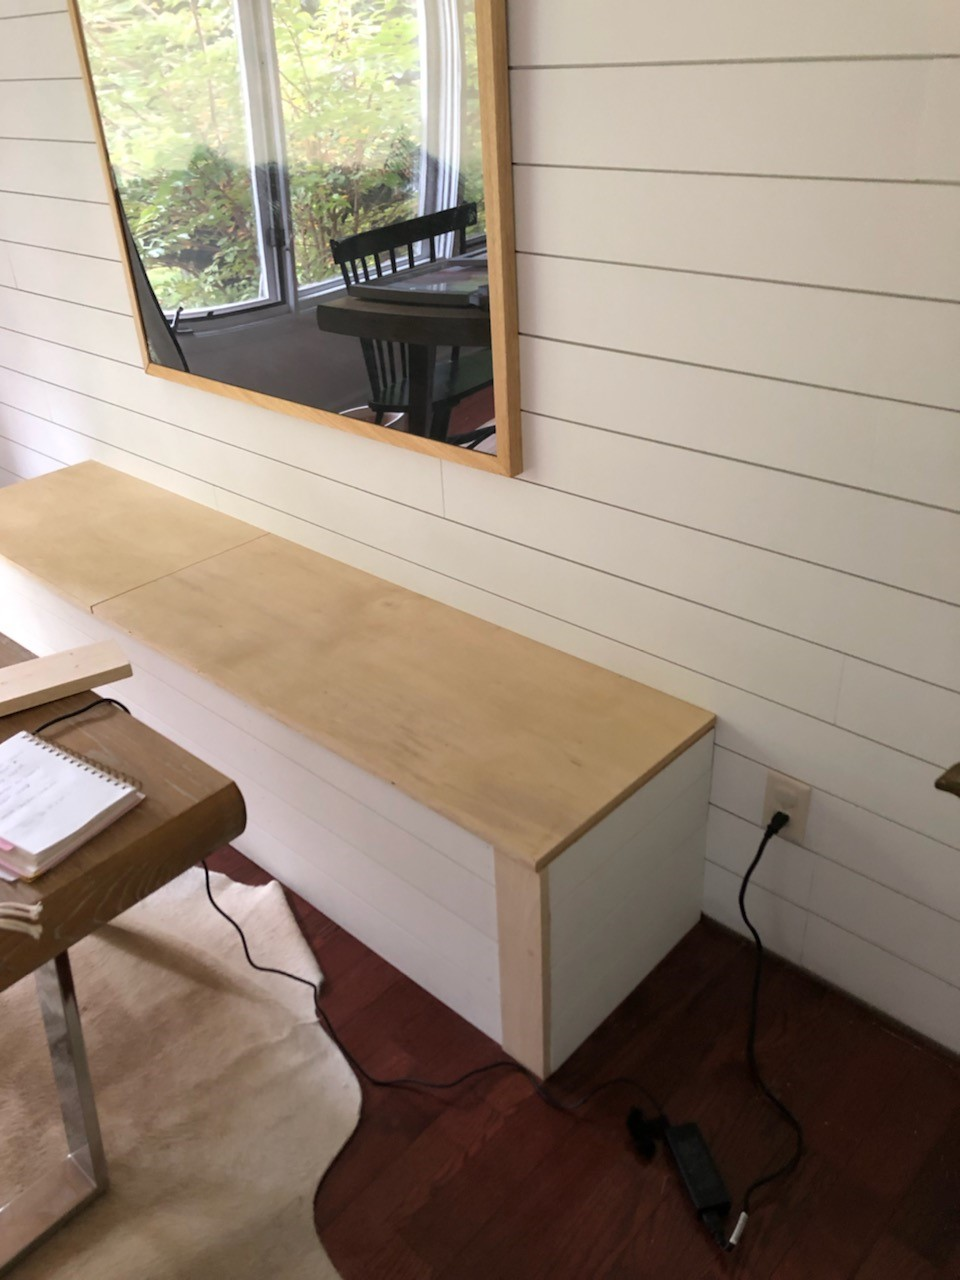 Fabulous Diy Built In Dining Bench With Storage Breakfast Nook Andrewgaddart Wooden Chair Designs For Living Room Andrewgaddartcom